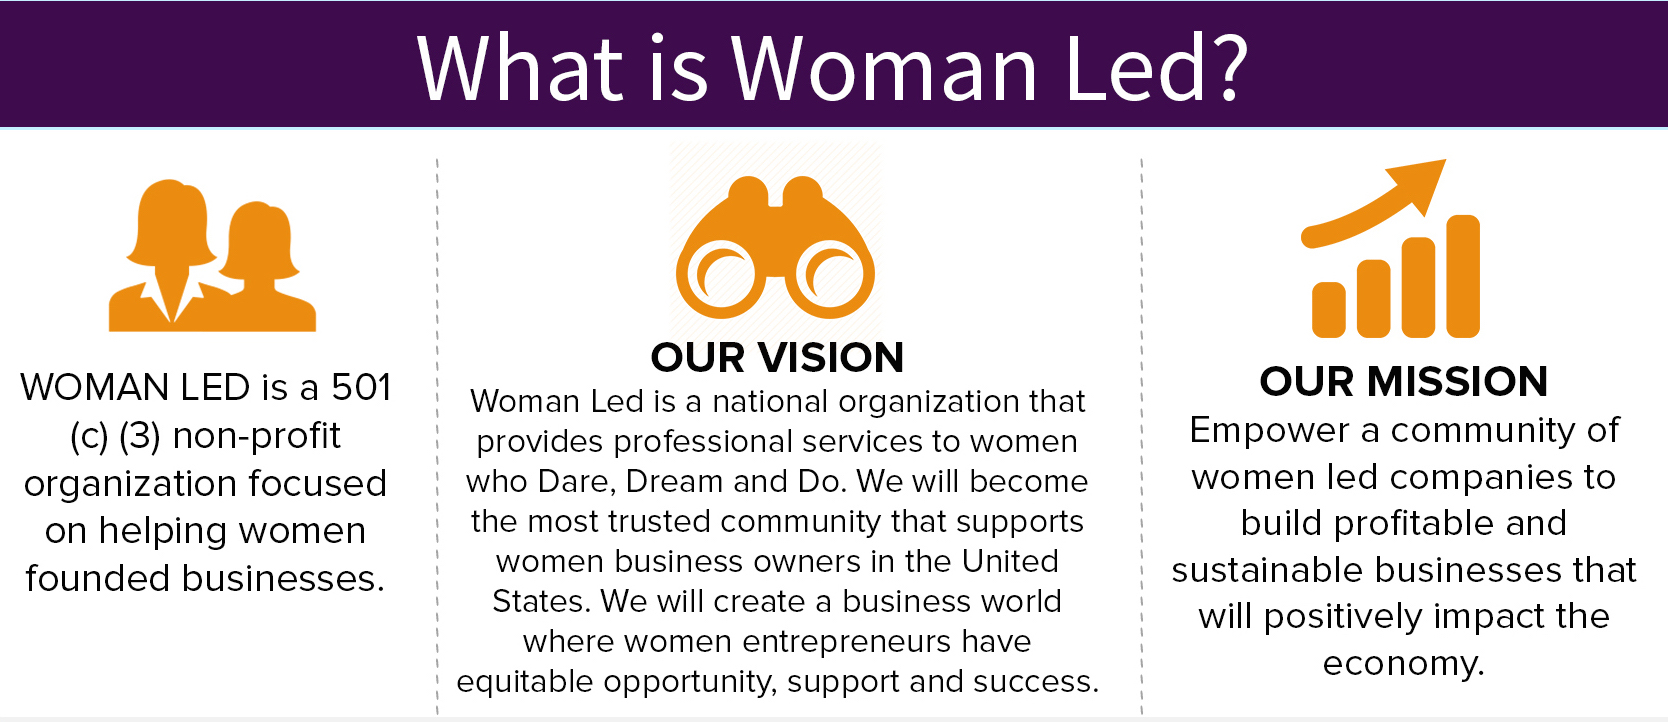 Woman Led Vision and Mission